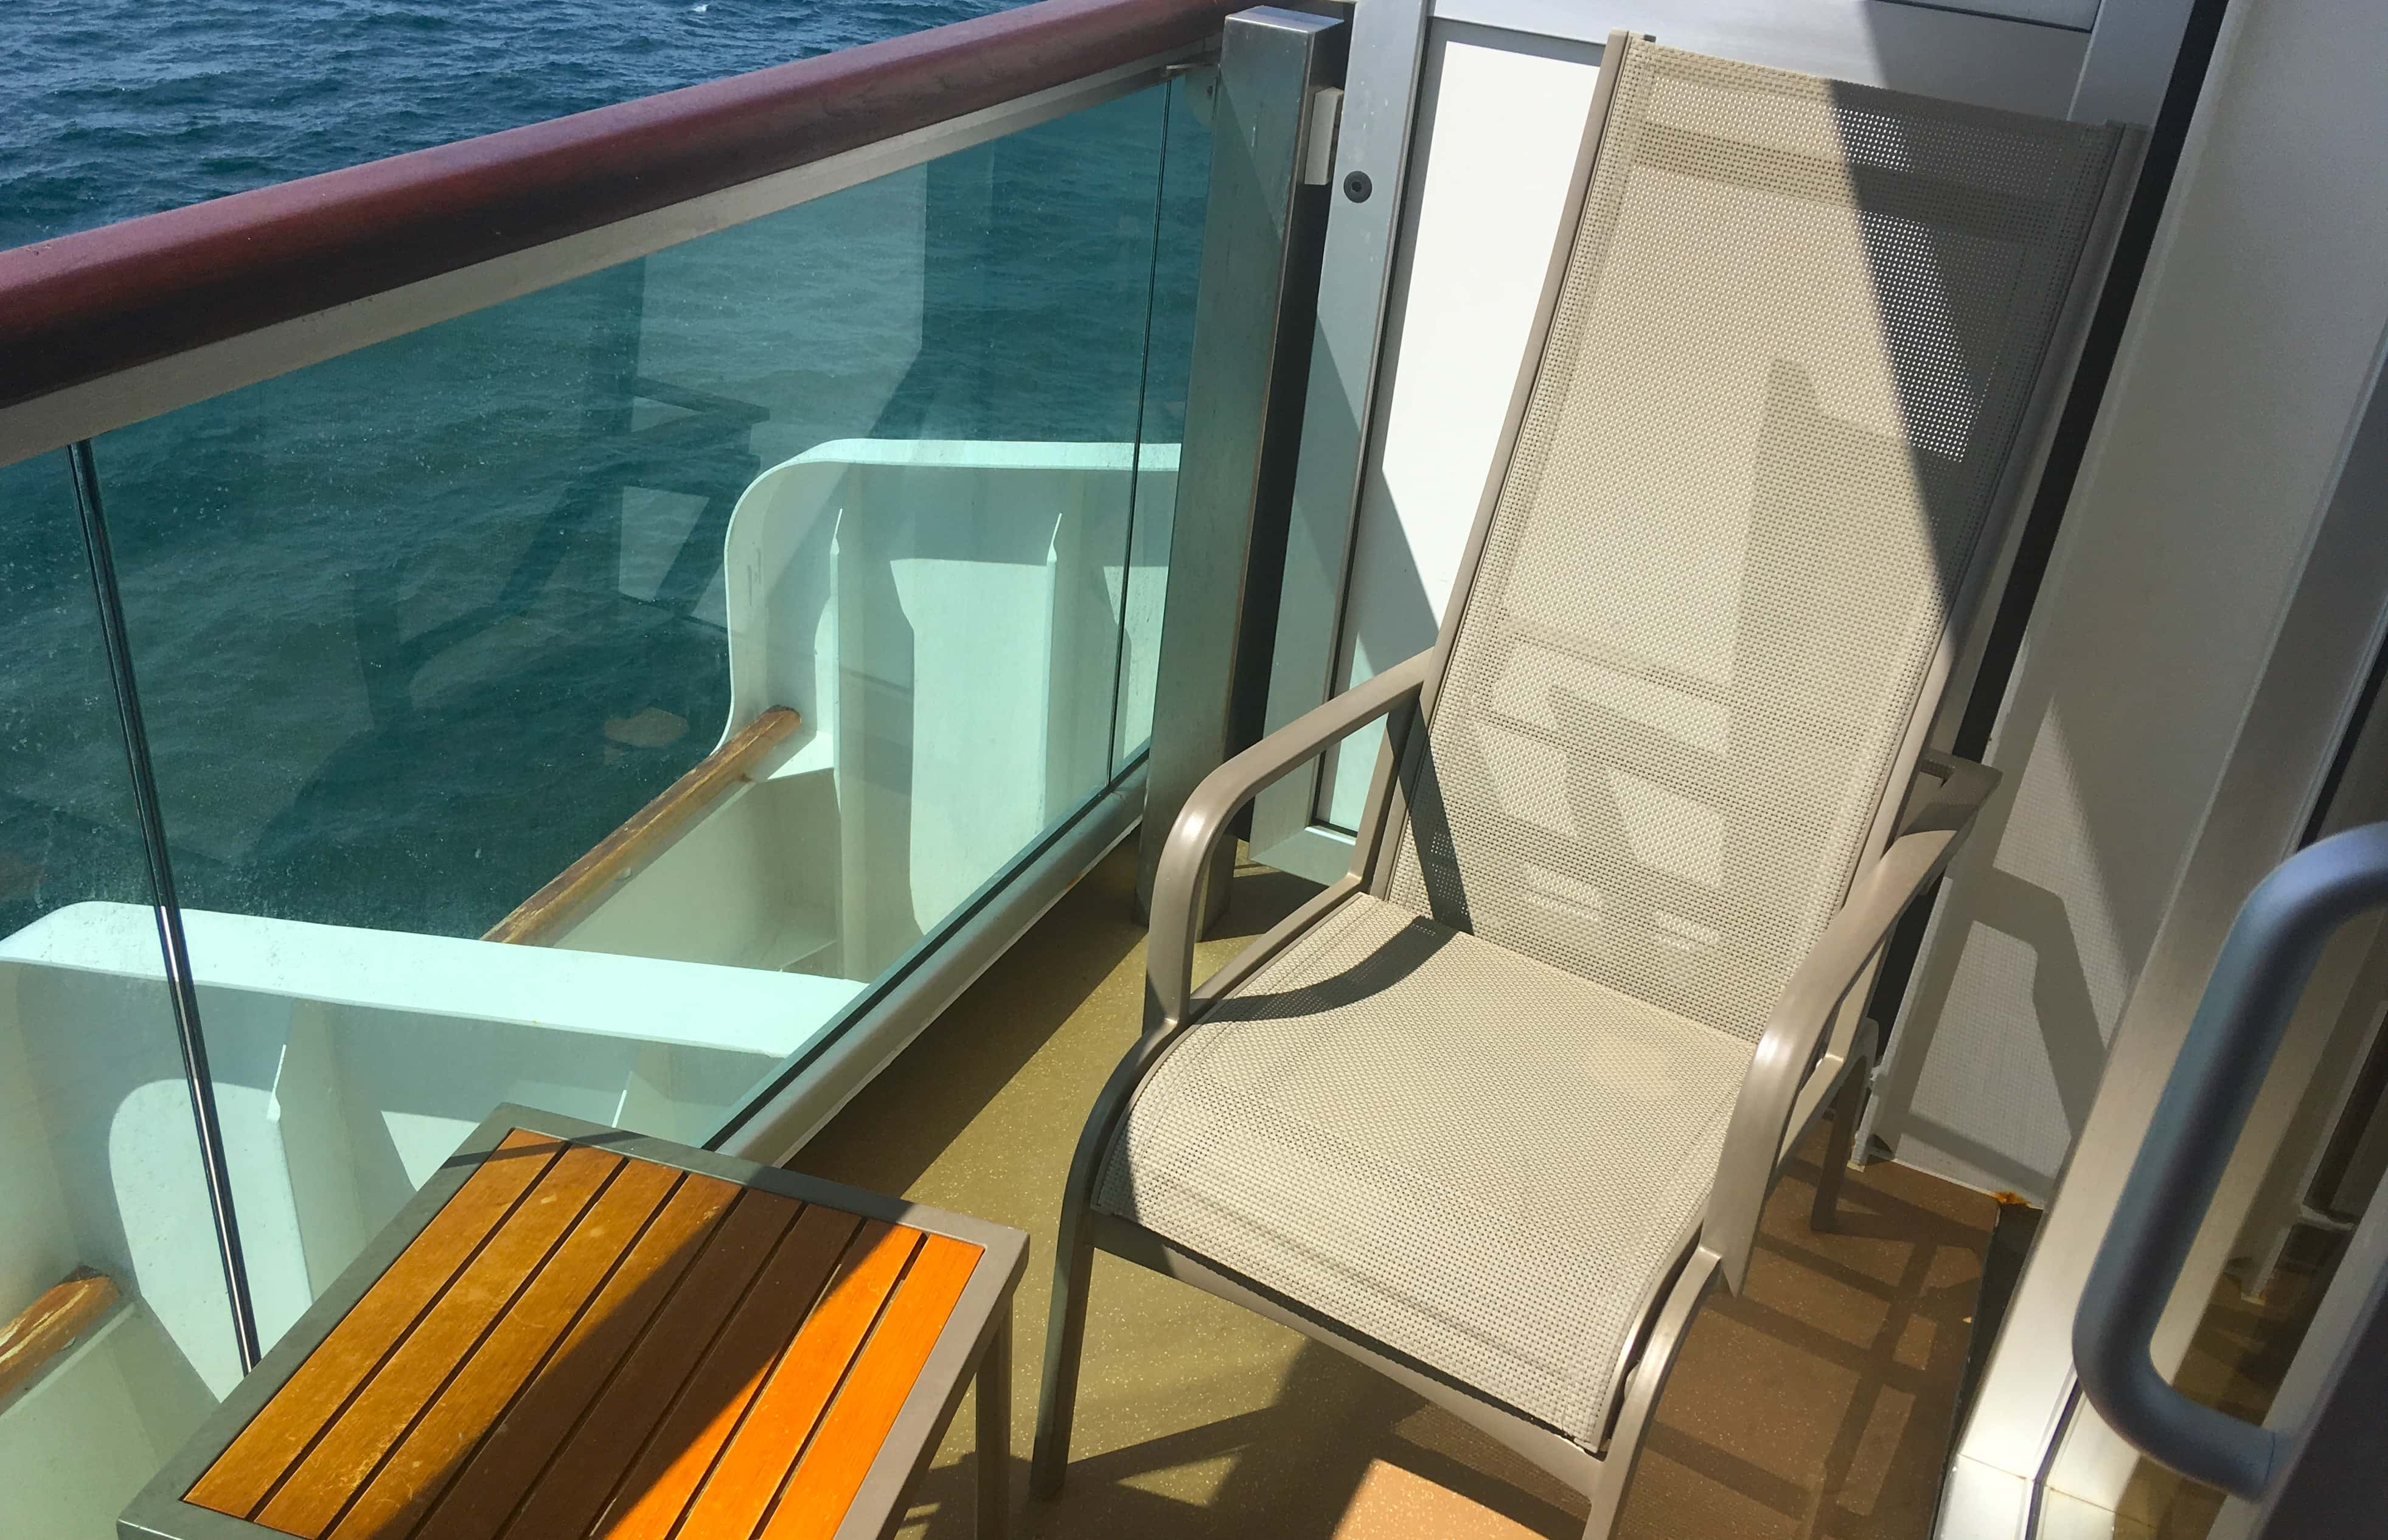 p&o britannia balcony size small big review reviews sun on balcony chair